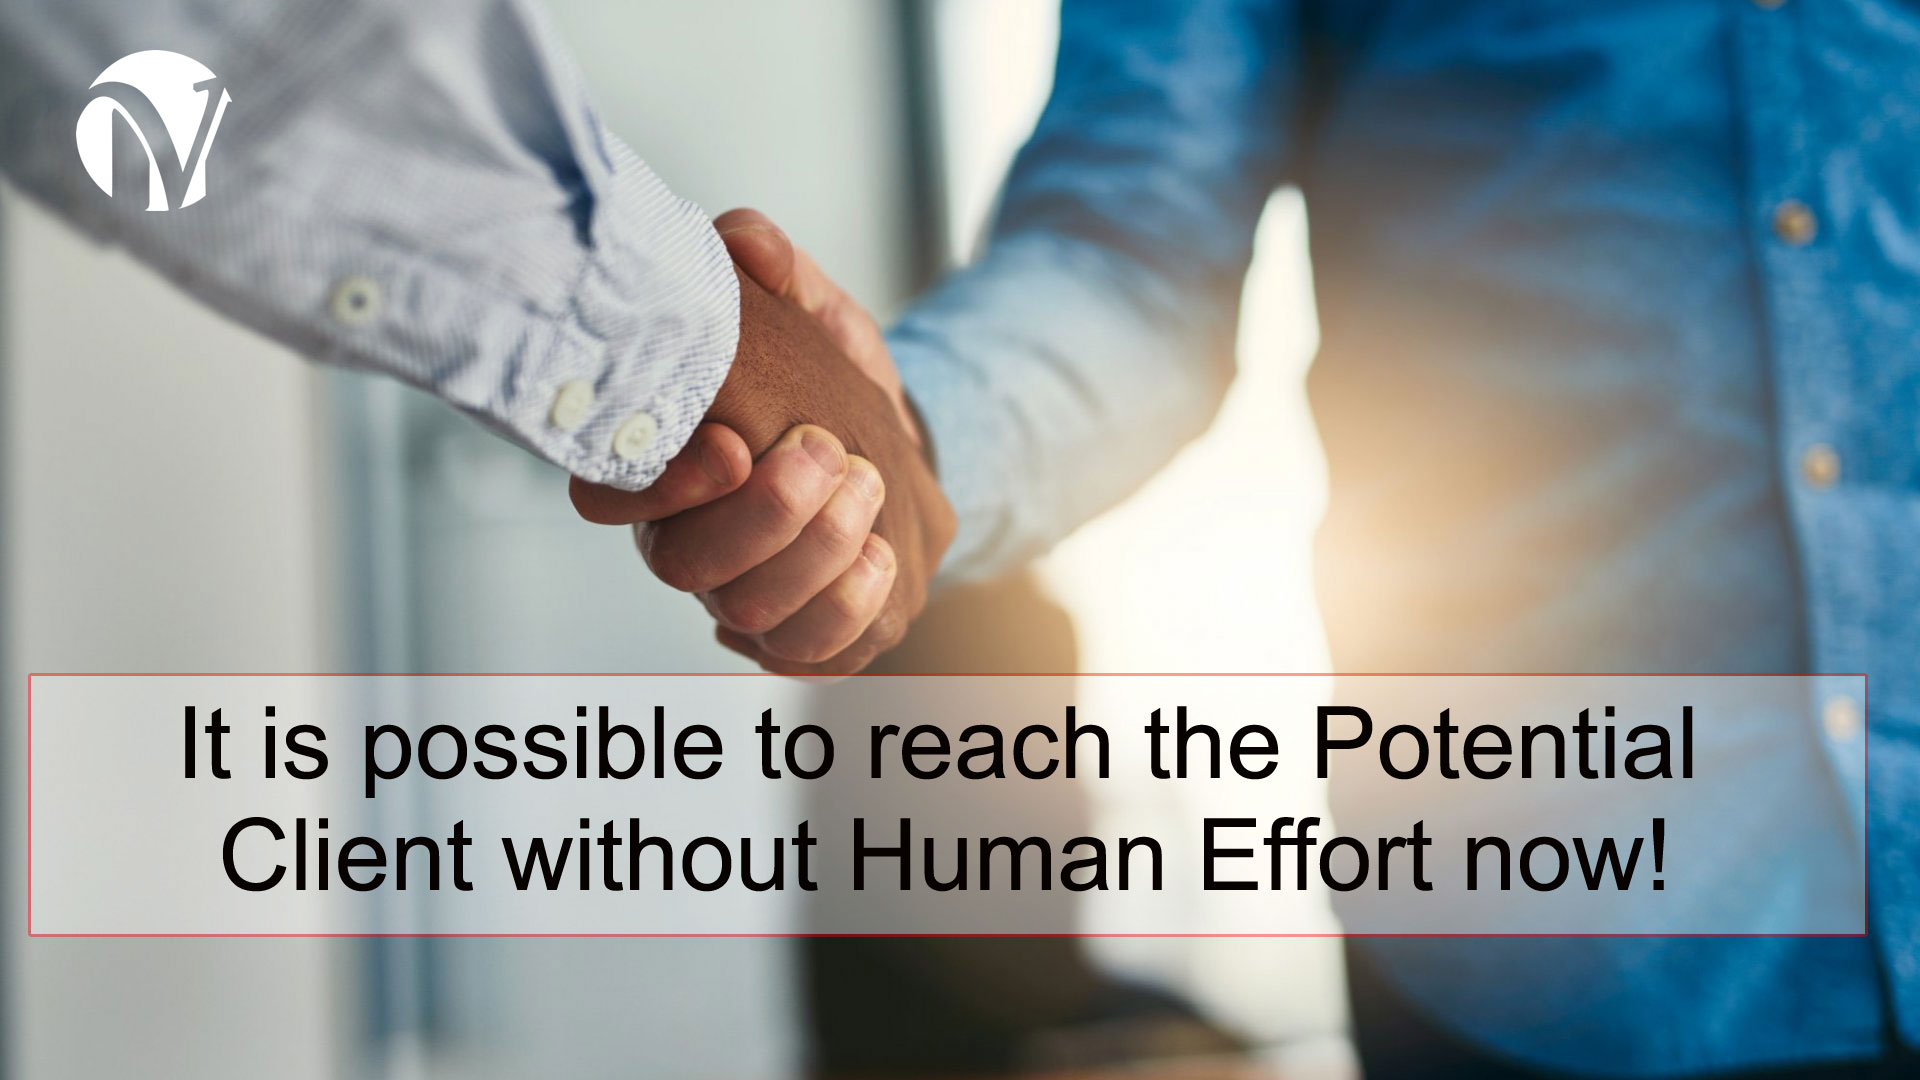 It is possible to reach the Potential Client without Human Effort now!